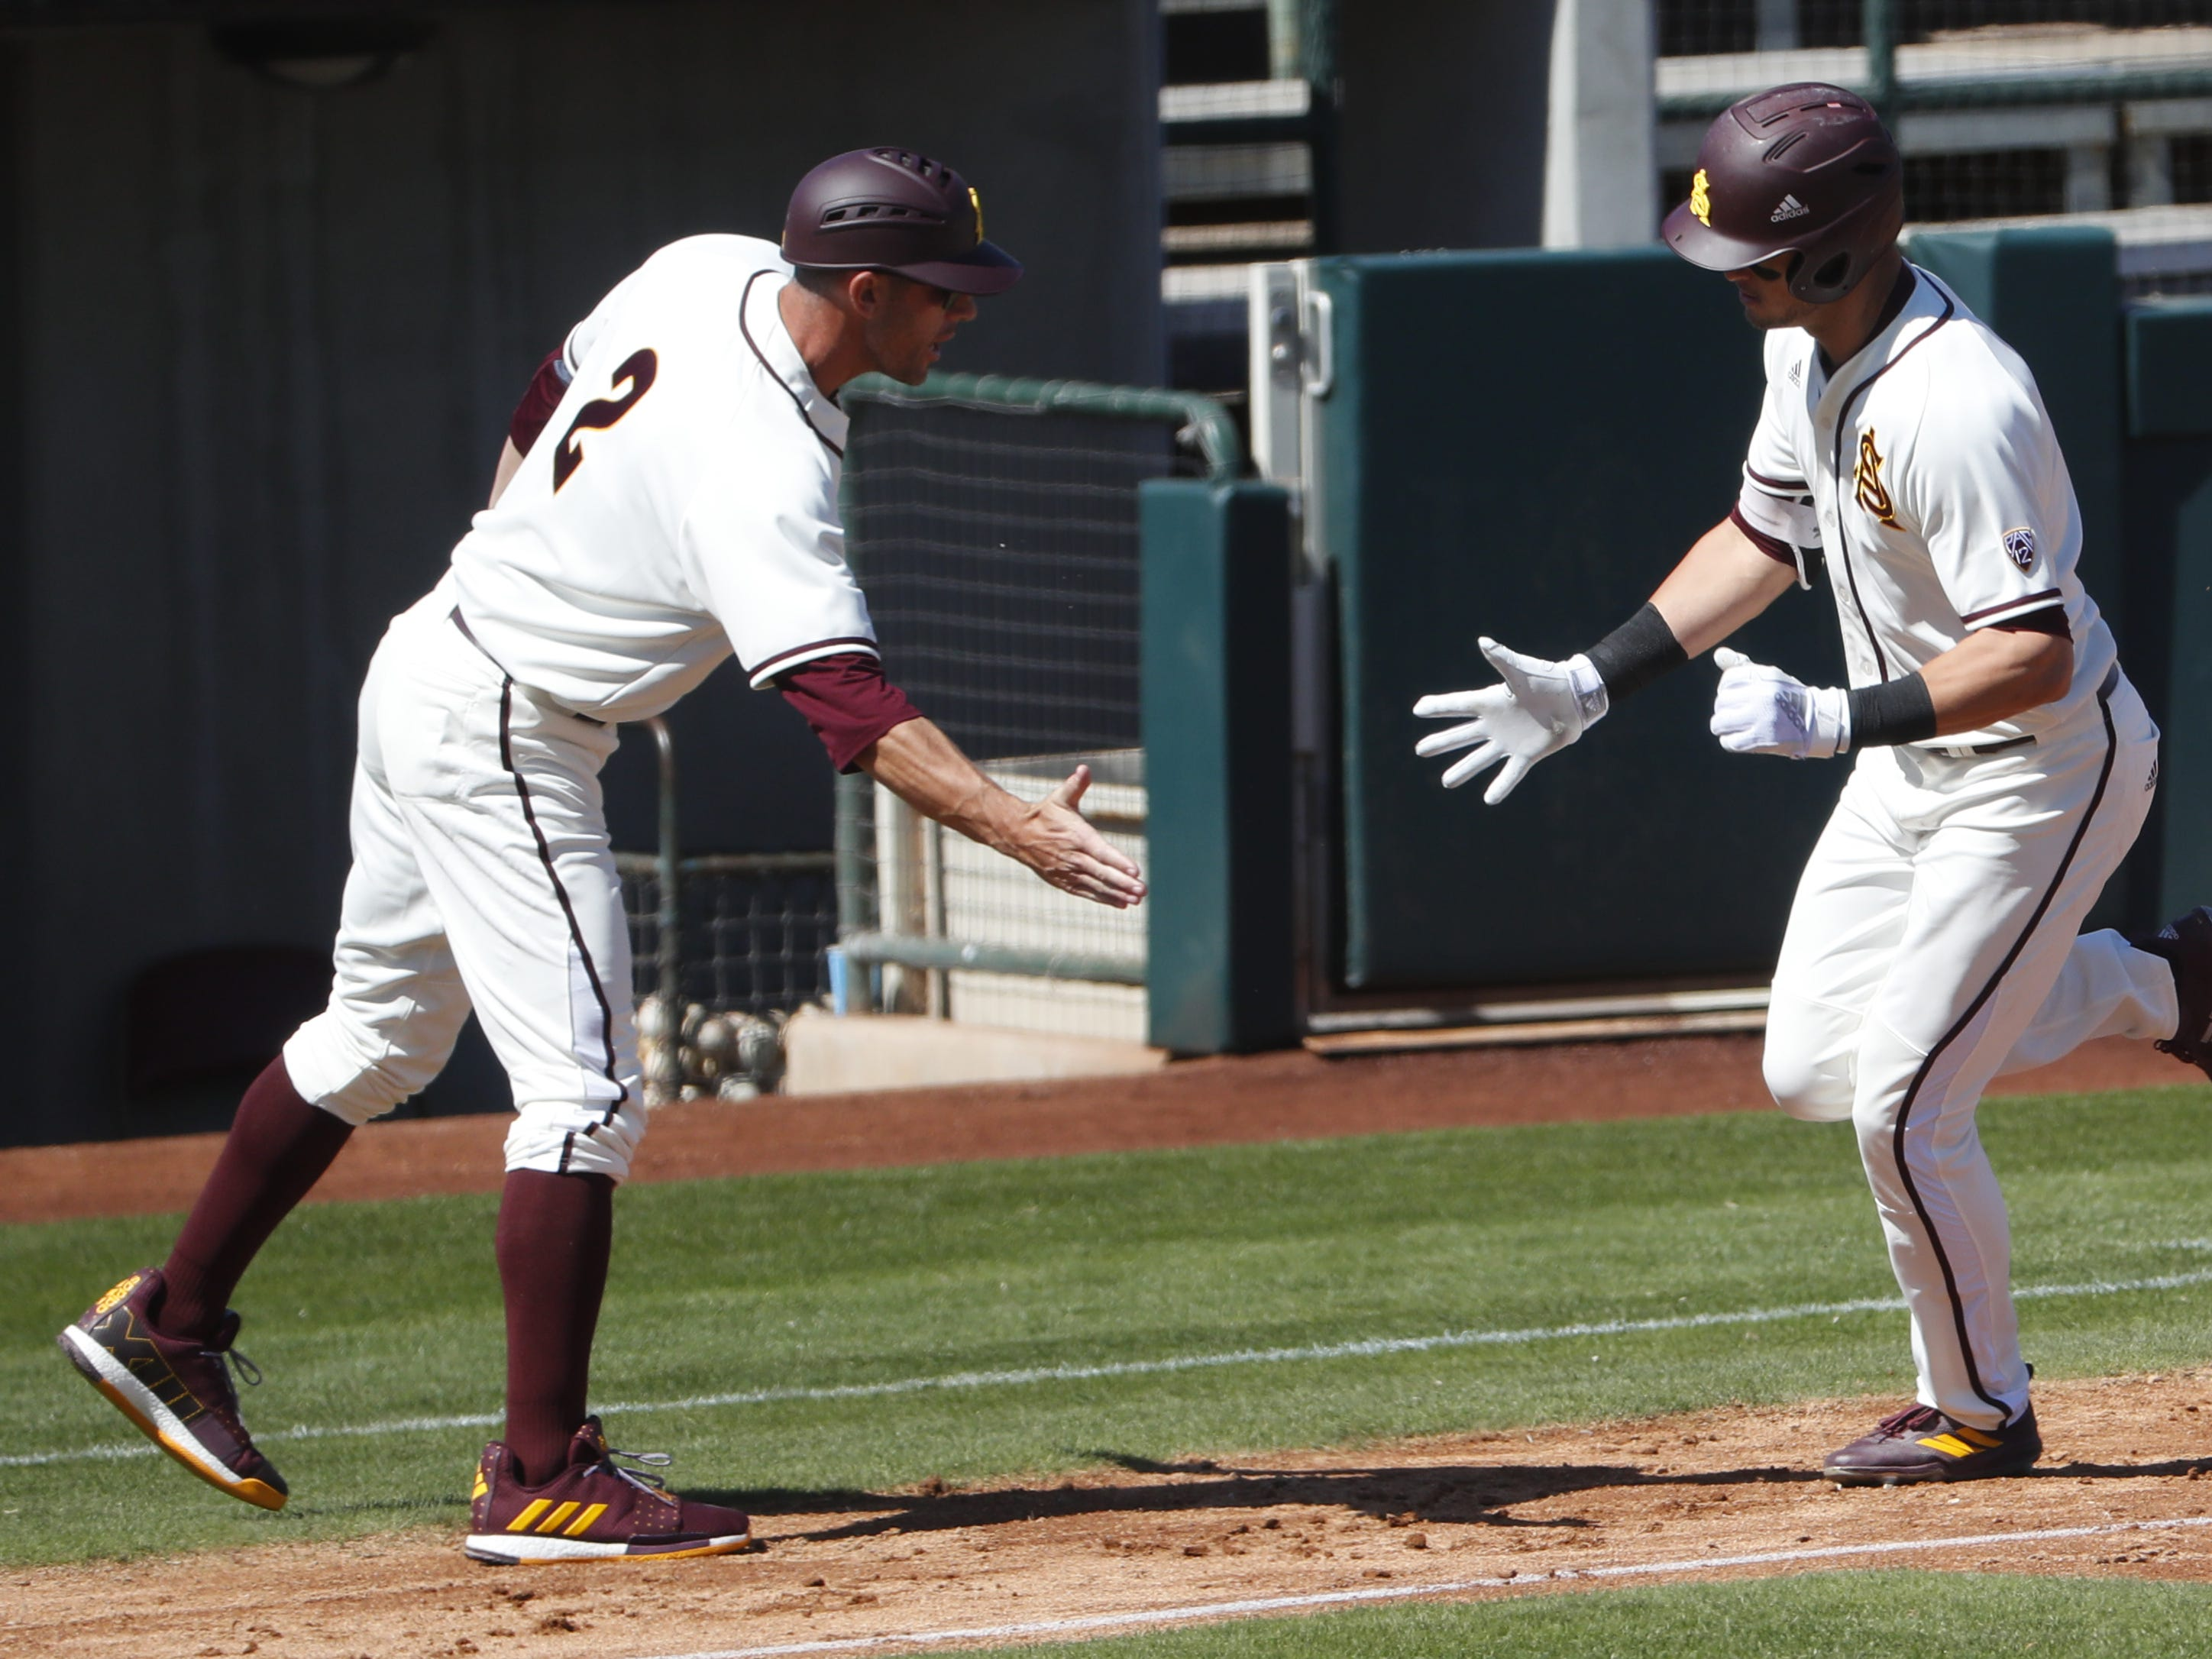 ASU's Hunter Bishop (4) rounds third base after hitting a three run home run in the third inning during a game against Xavier at Phoenix Municipal Stadium in Phoenix, Ariz. on March 10, 2019.